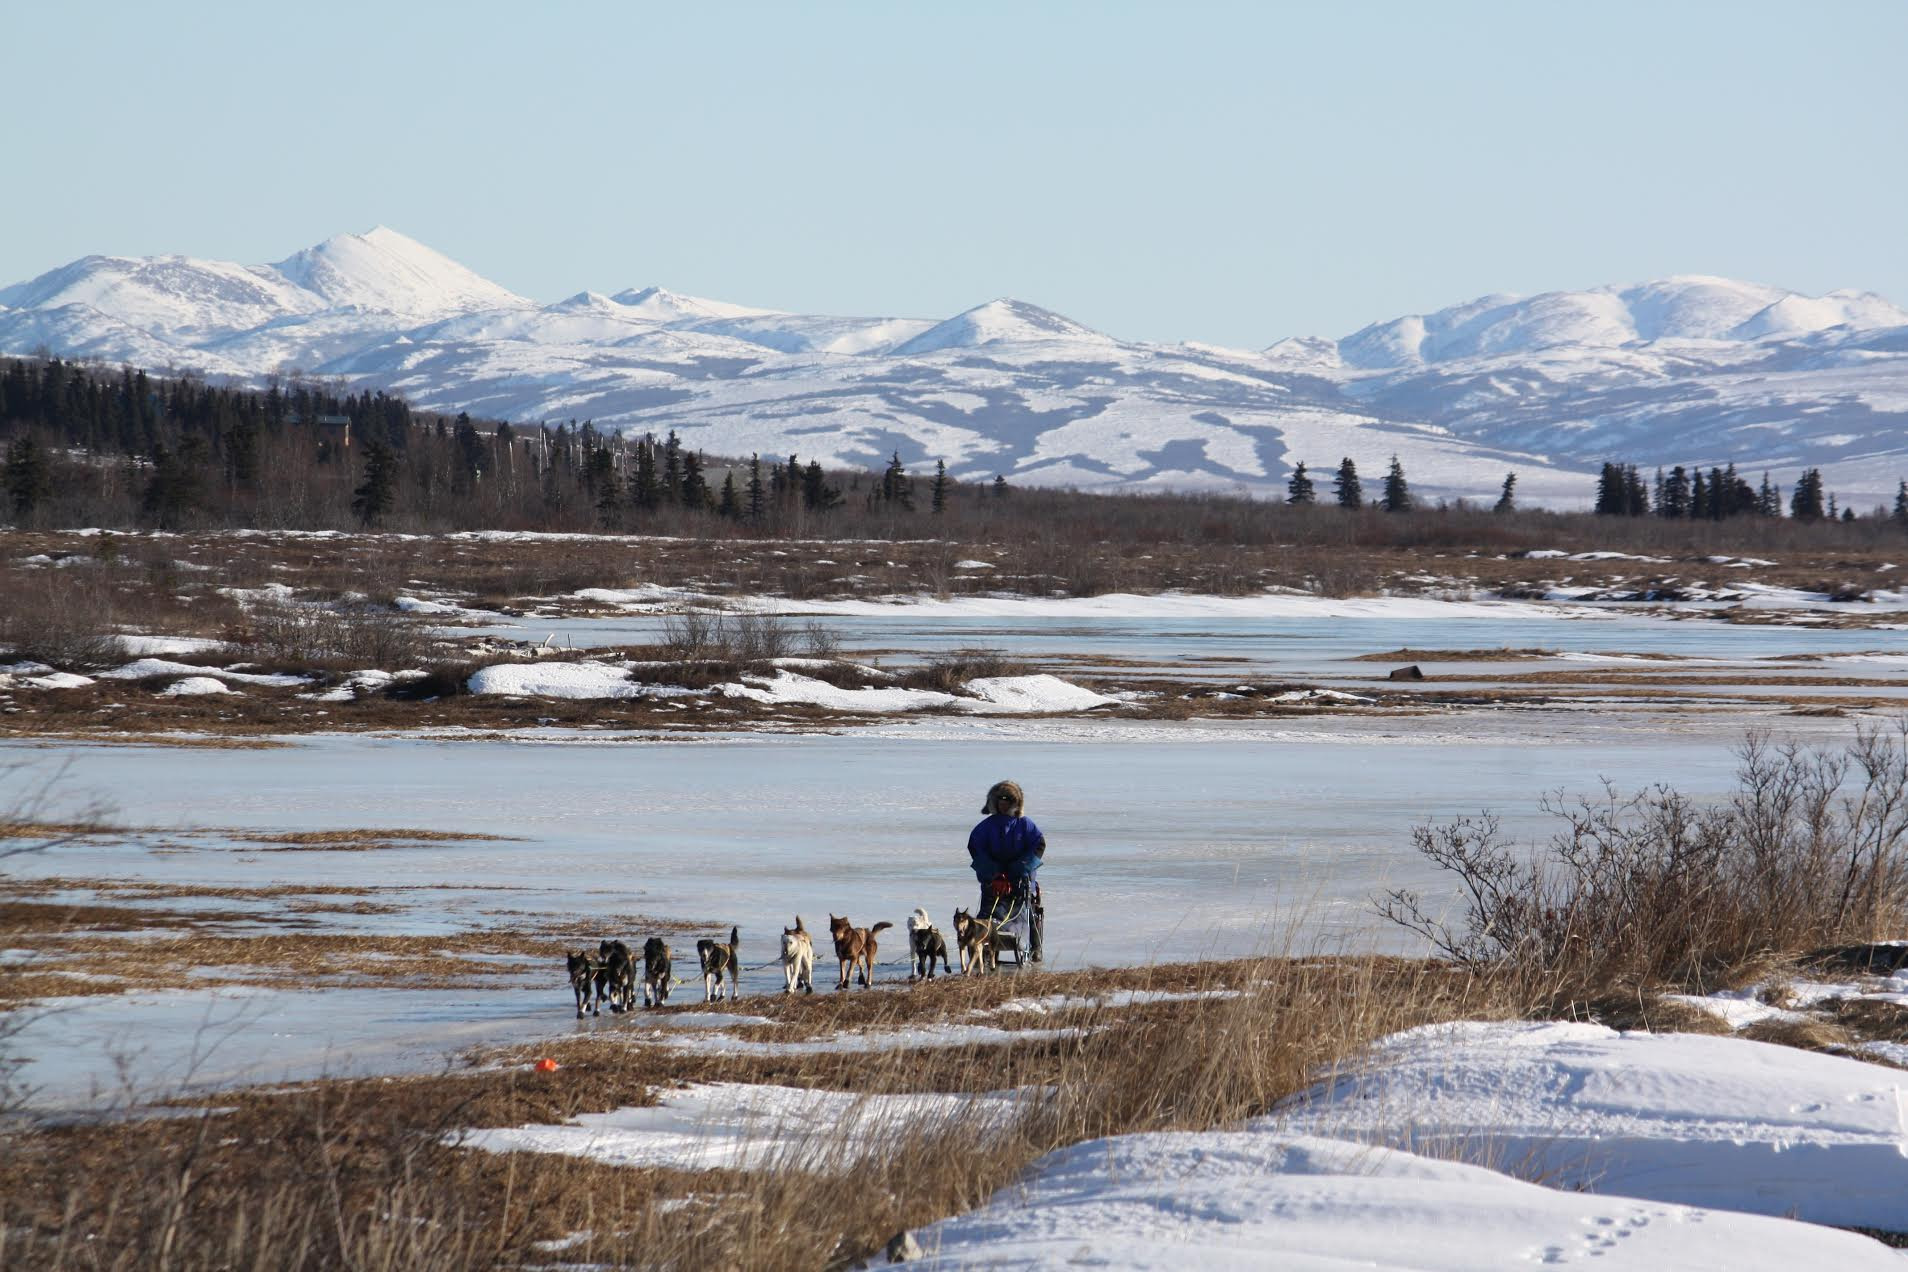 The lack of snowfall has hampered racers in the Iditarod as well as made hunting and travel between villages difficult. Photo by Fisher Dill